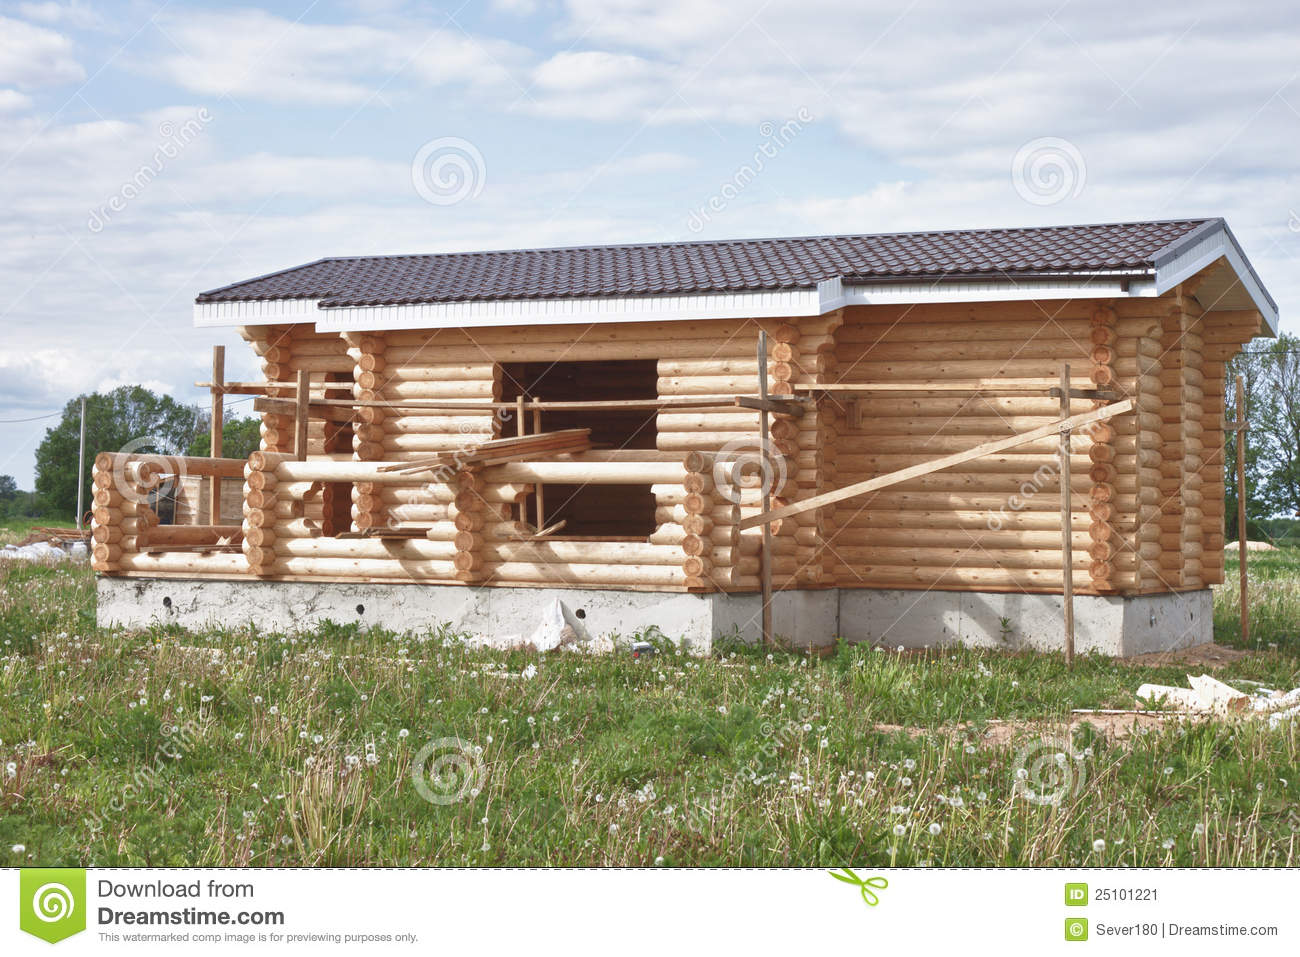 Stock Image Small Suburban House Under Construction Image25101221 on Small Rustic Cabin Home Plans